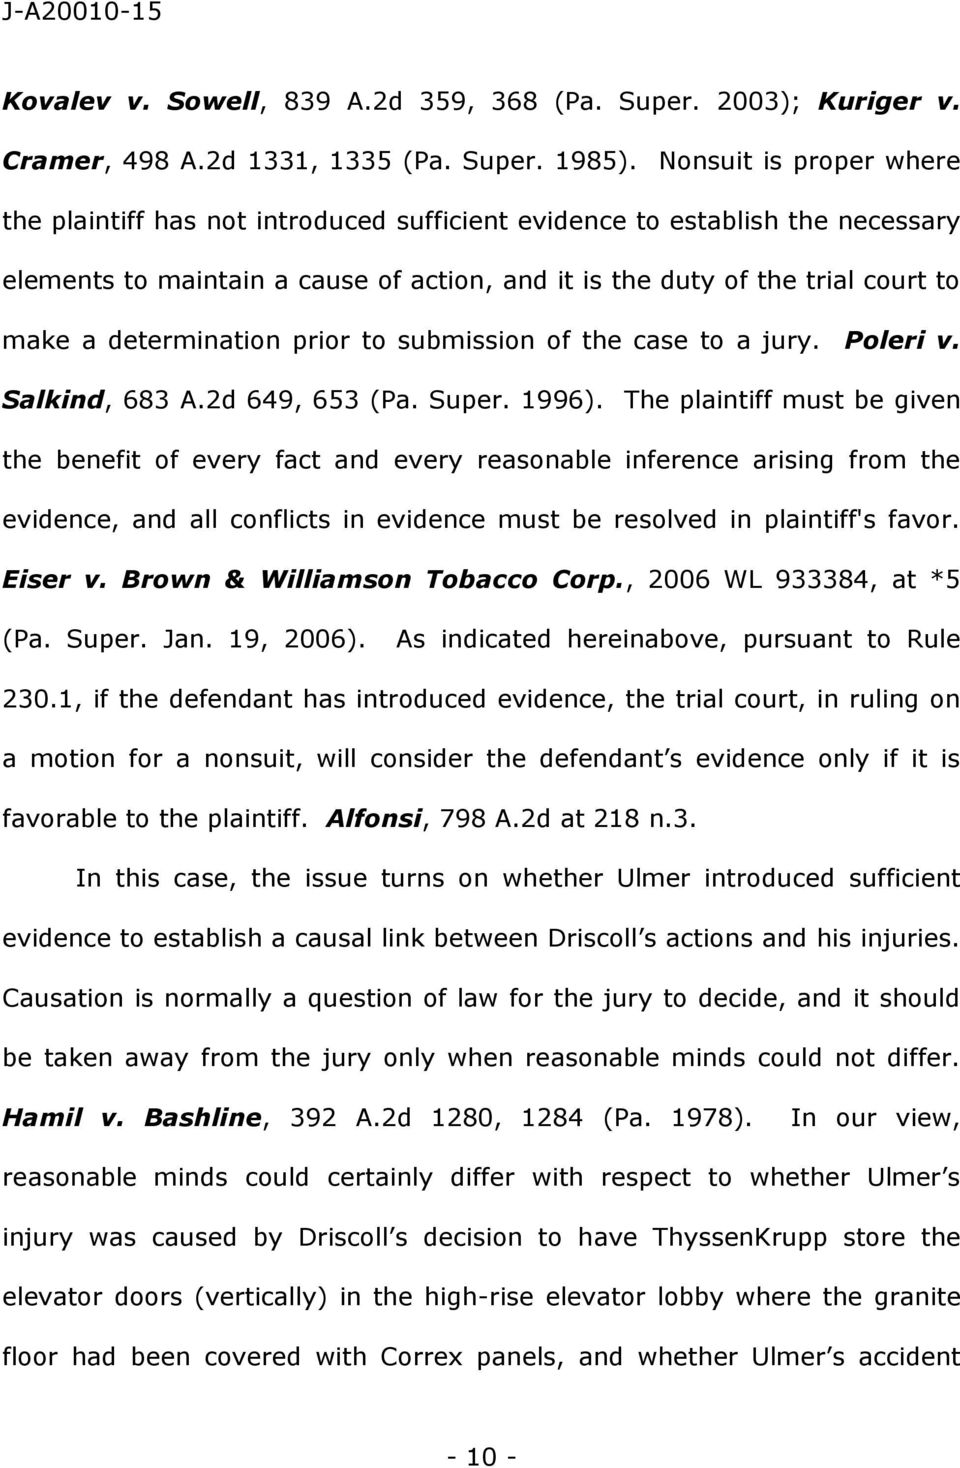 determination prior to submission of the case to a jury. Poleri v. Salkind, 683 A.2d 649, 653 (Pa. Super. 1996).